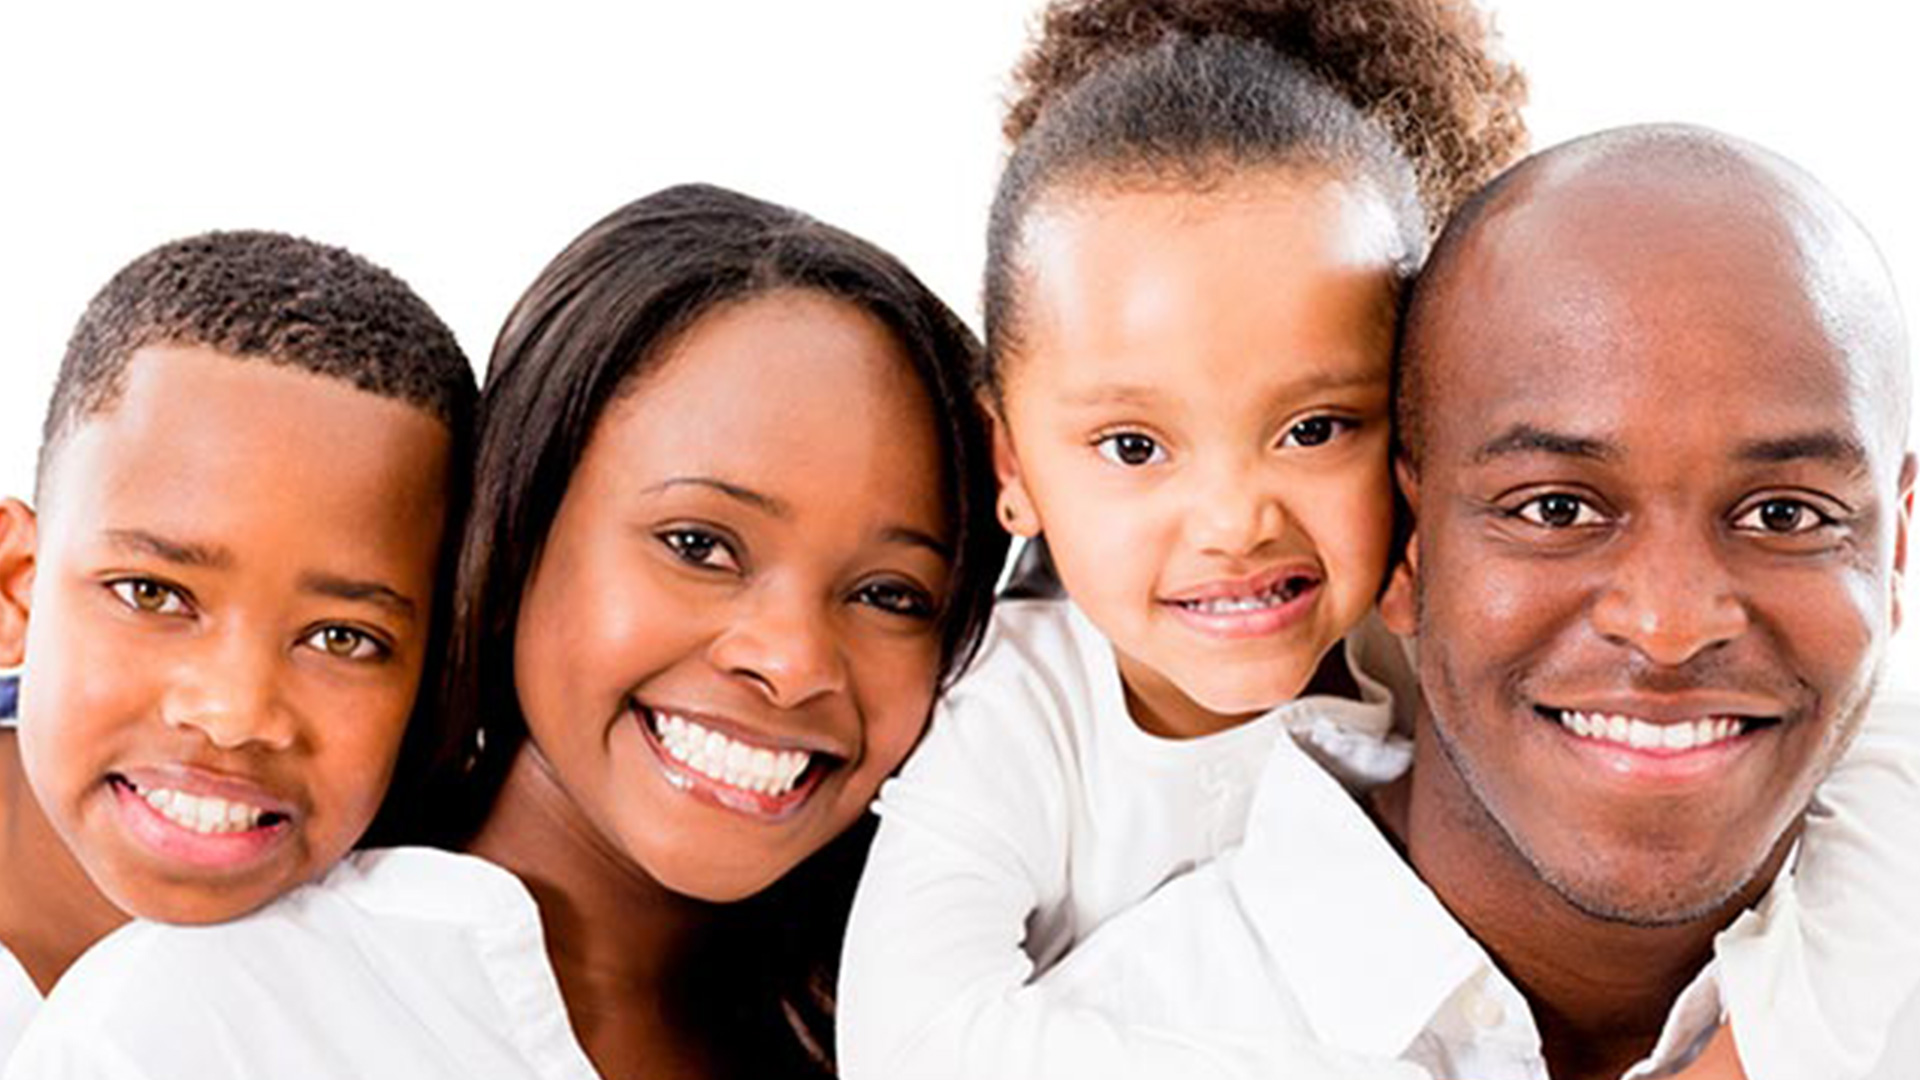 dental care for you and your family by best dentists in bethesda md